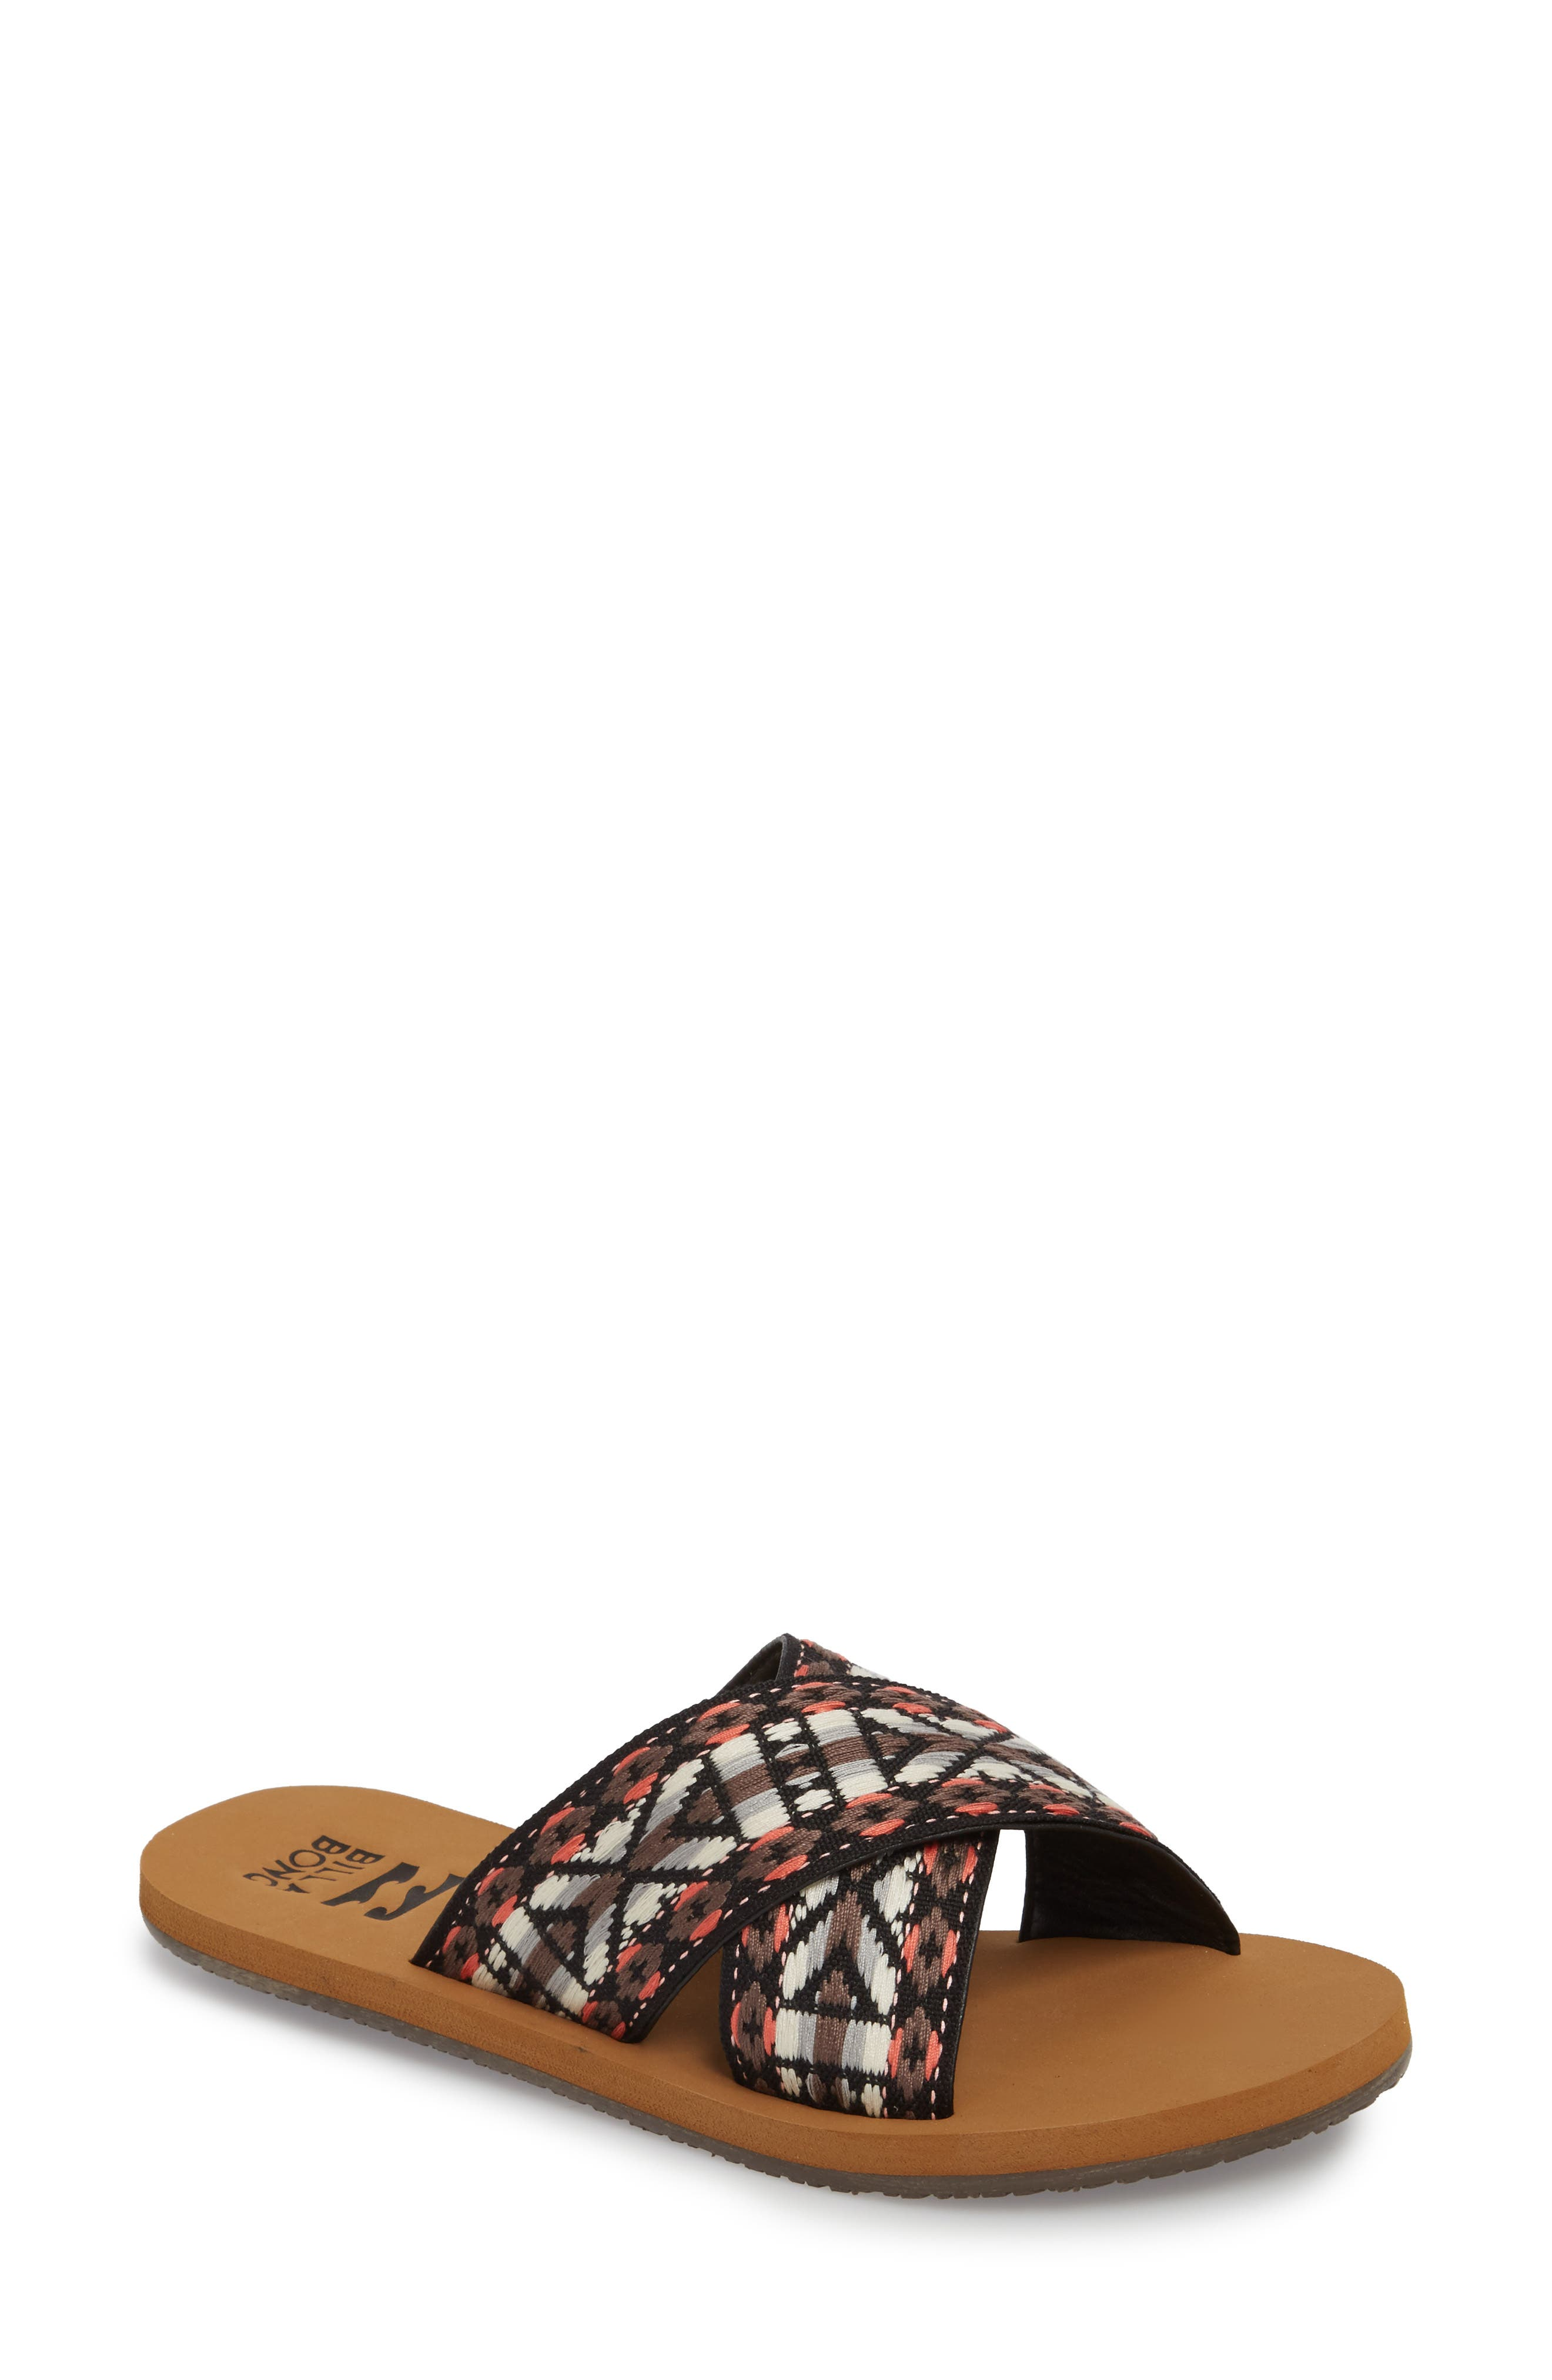 Surf Bandit Slide Sandal,                             Main thumbnail 1, color,                             Vintage Coral